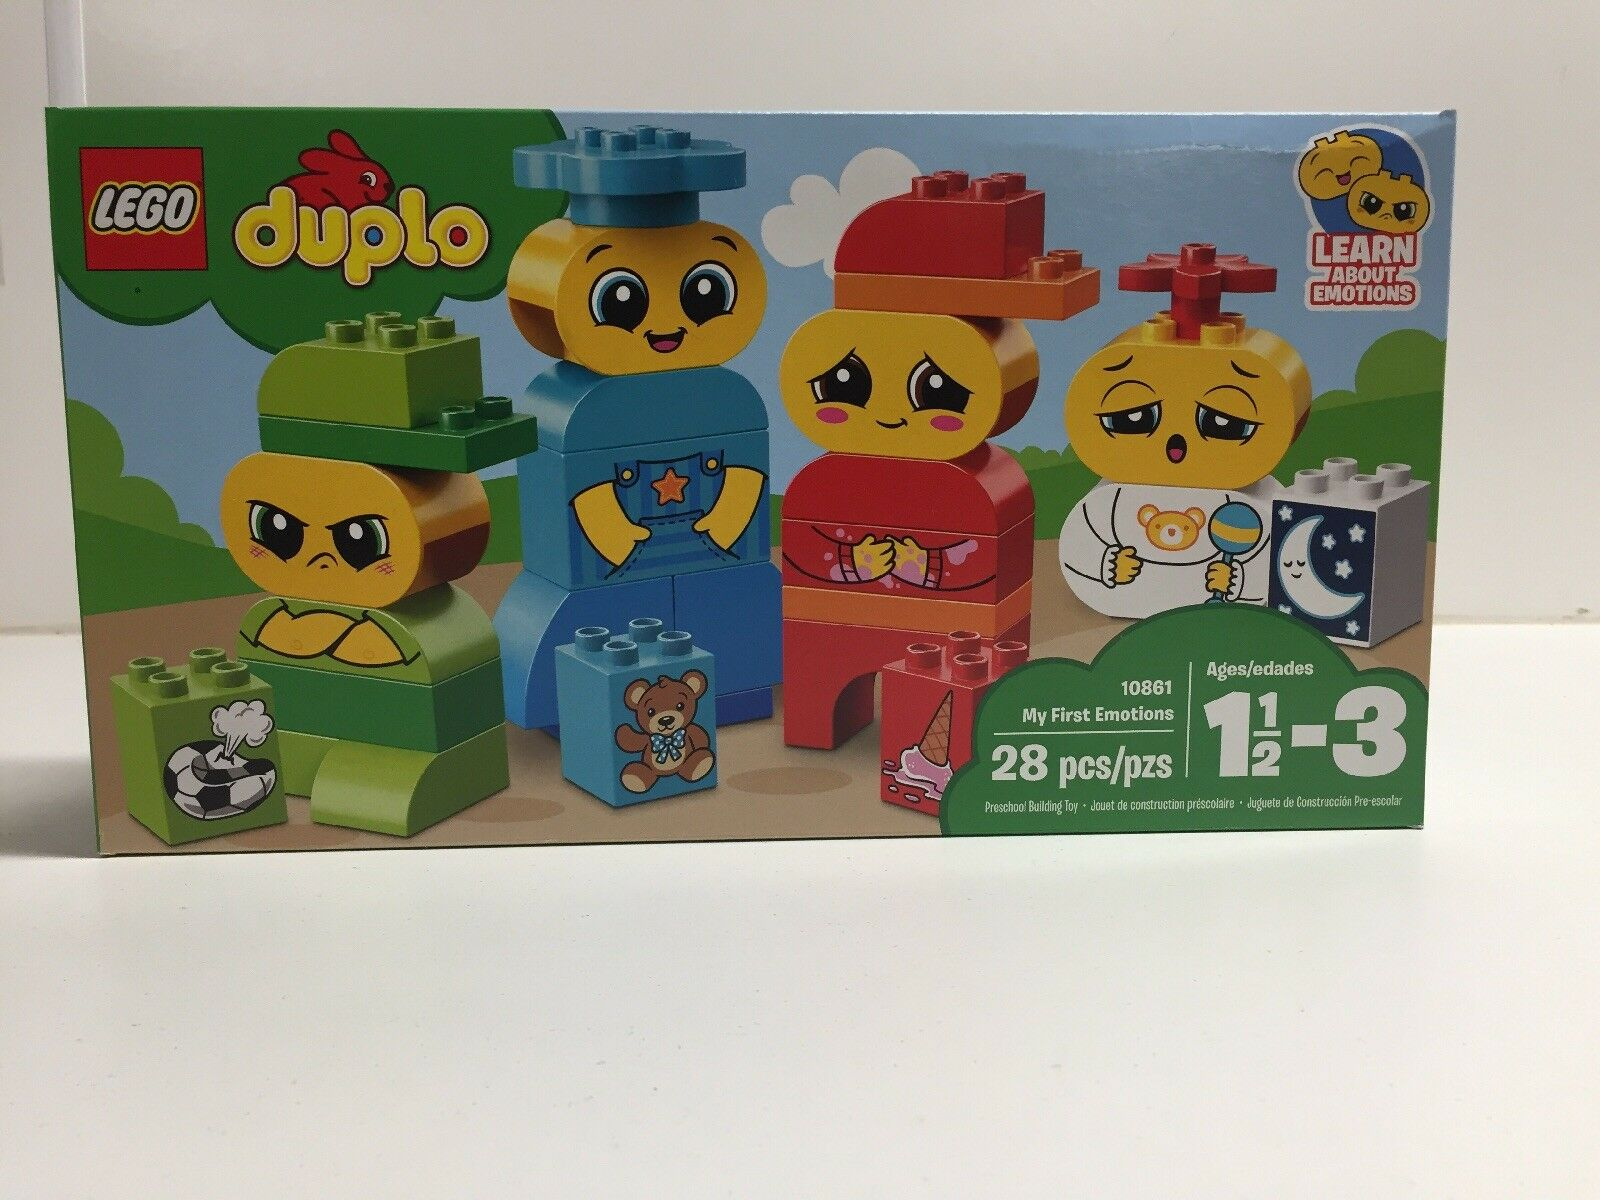 NEW NIB LEGO Duplo 10861 My First Emotions NISB Factory Sealed